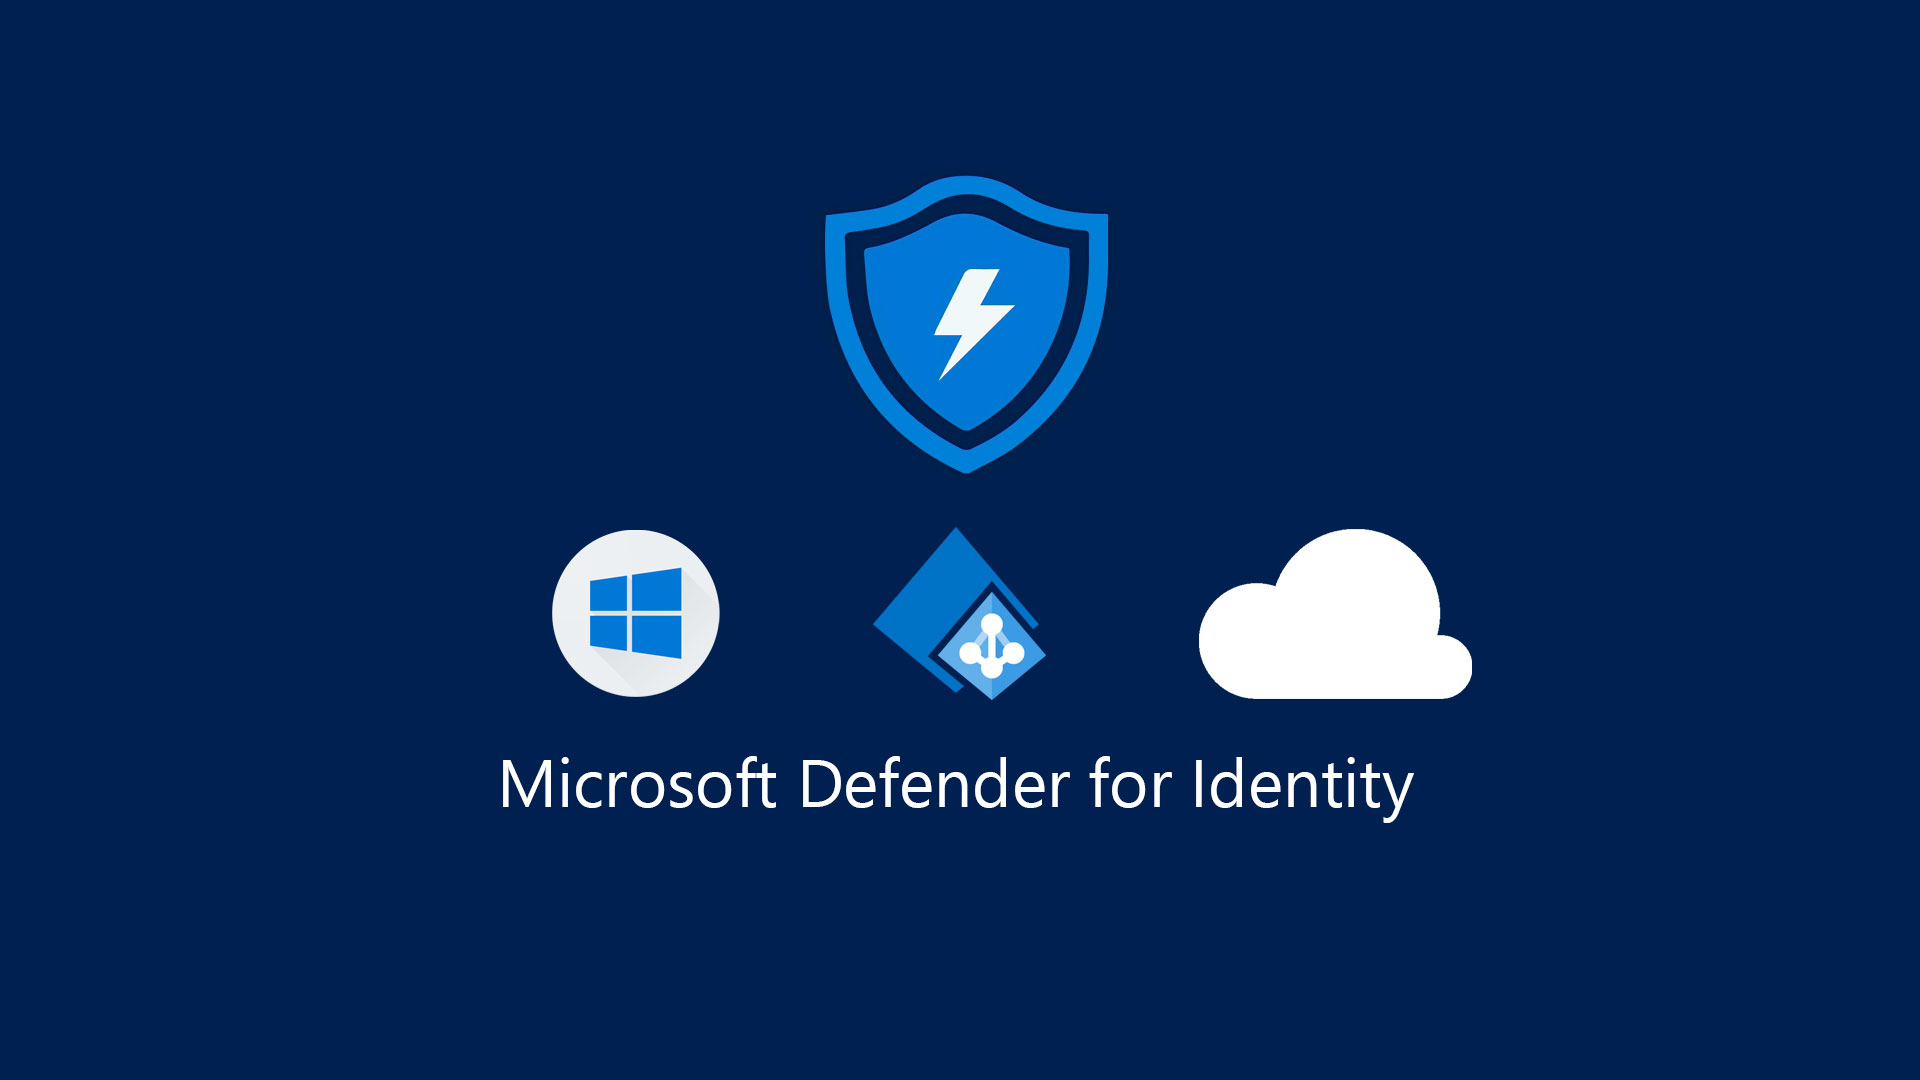 Microsoft Defender for Identity